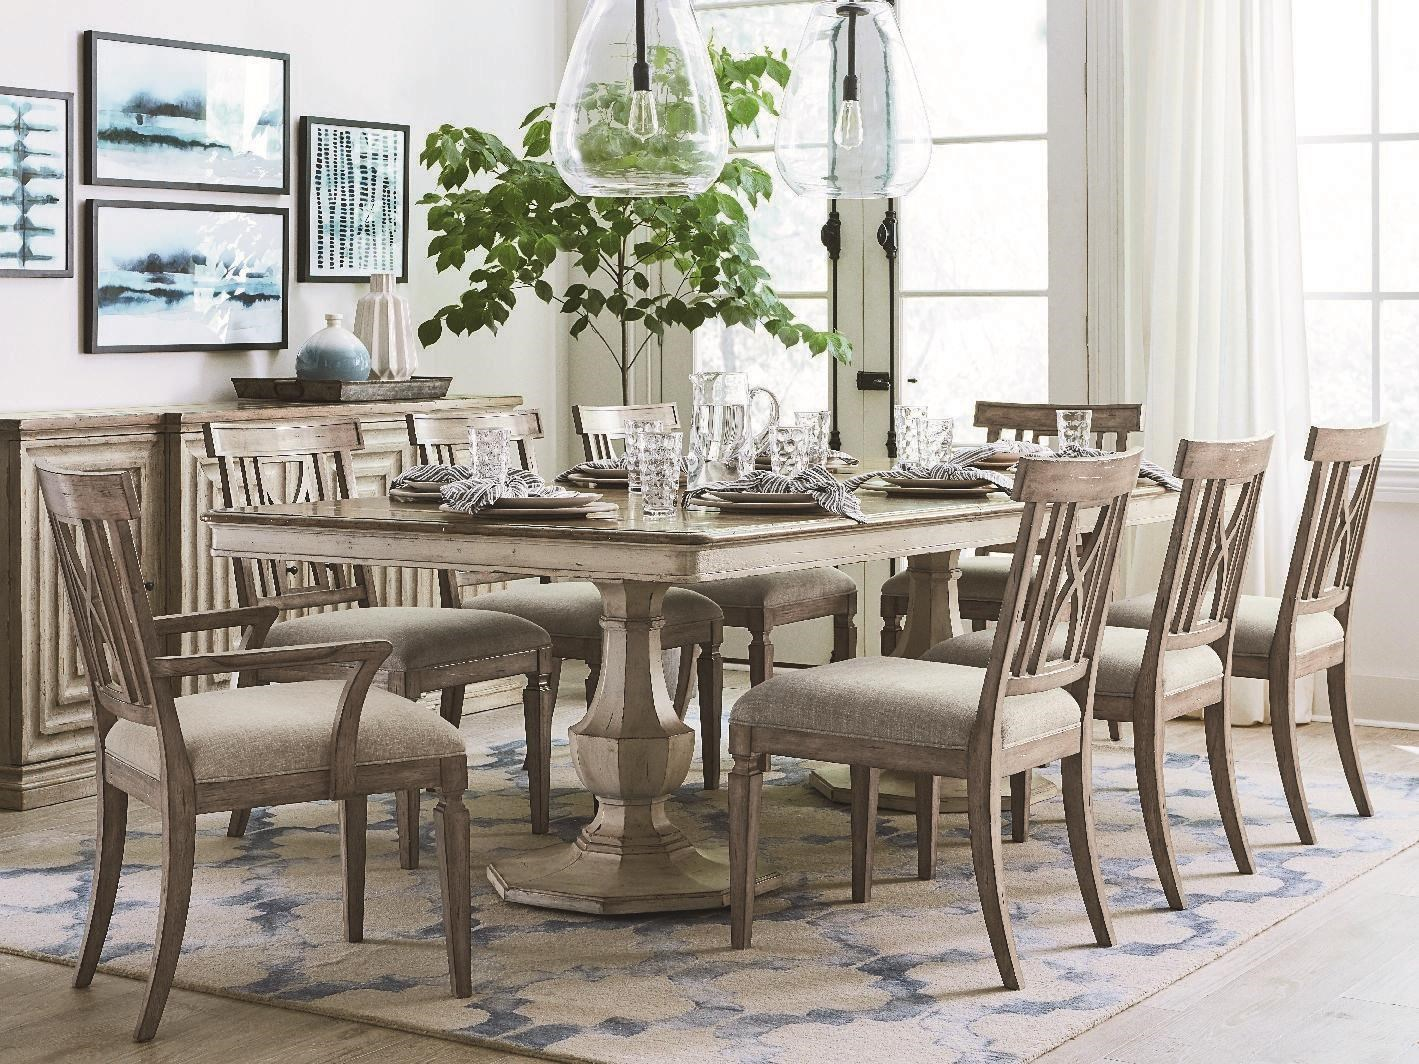 Dining Table, 6 Side Chairs, & 2 Arm Chairs